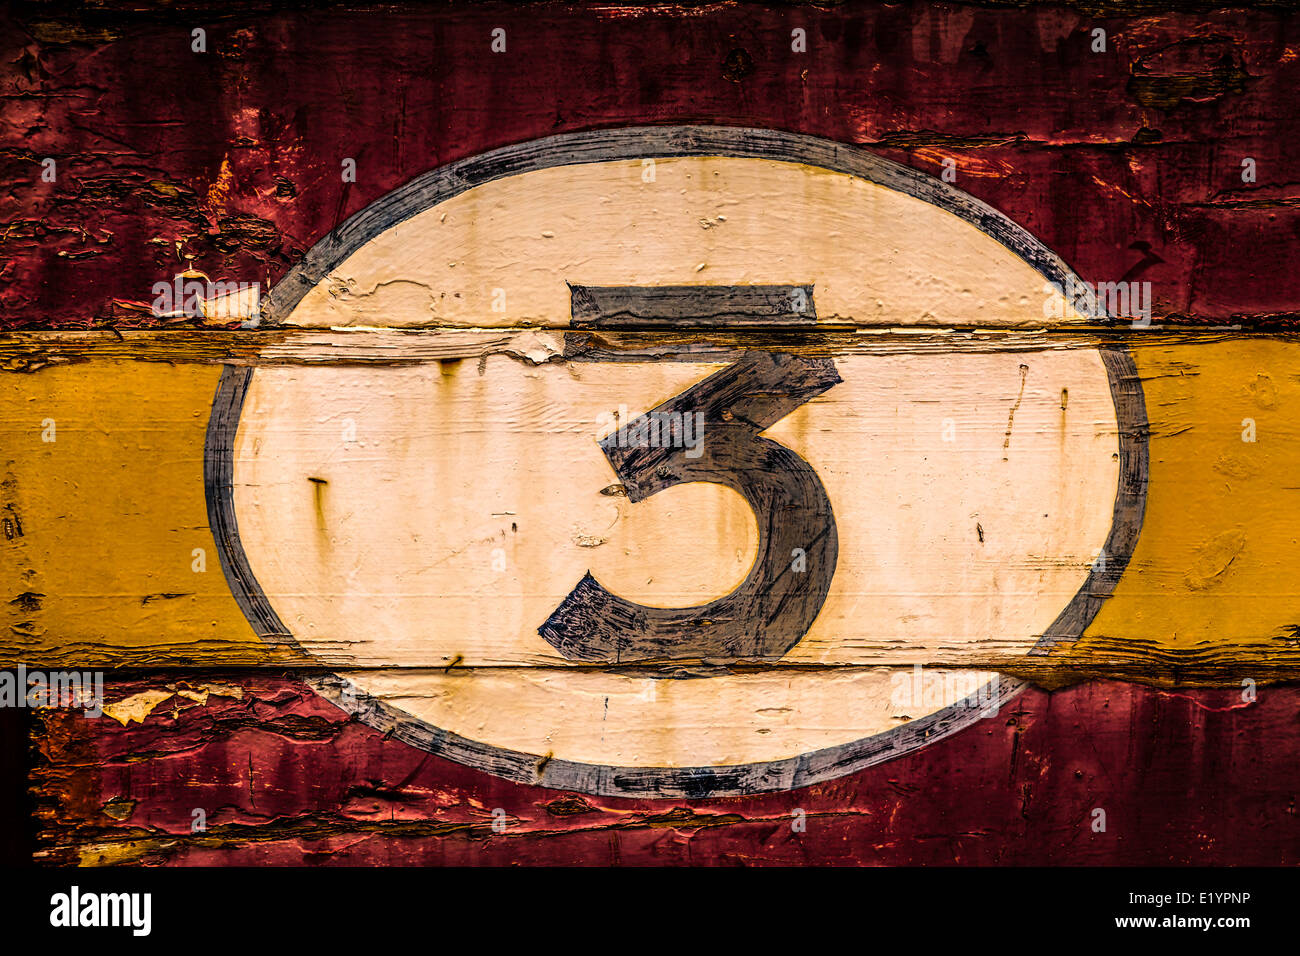 Old painted signs with numerals. Number 3 from a series of numerals. - Stock Image